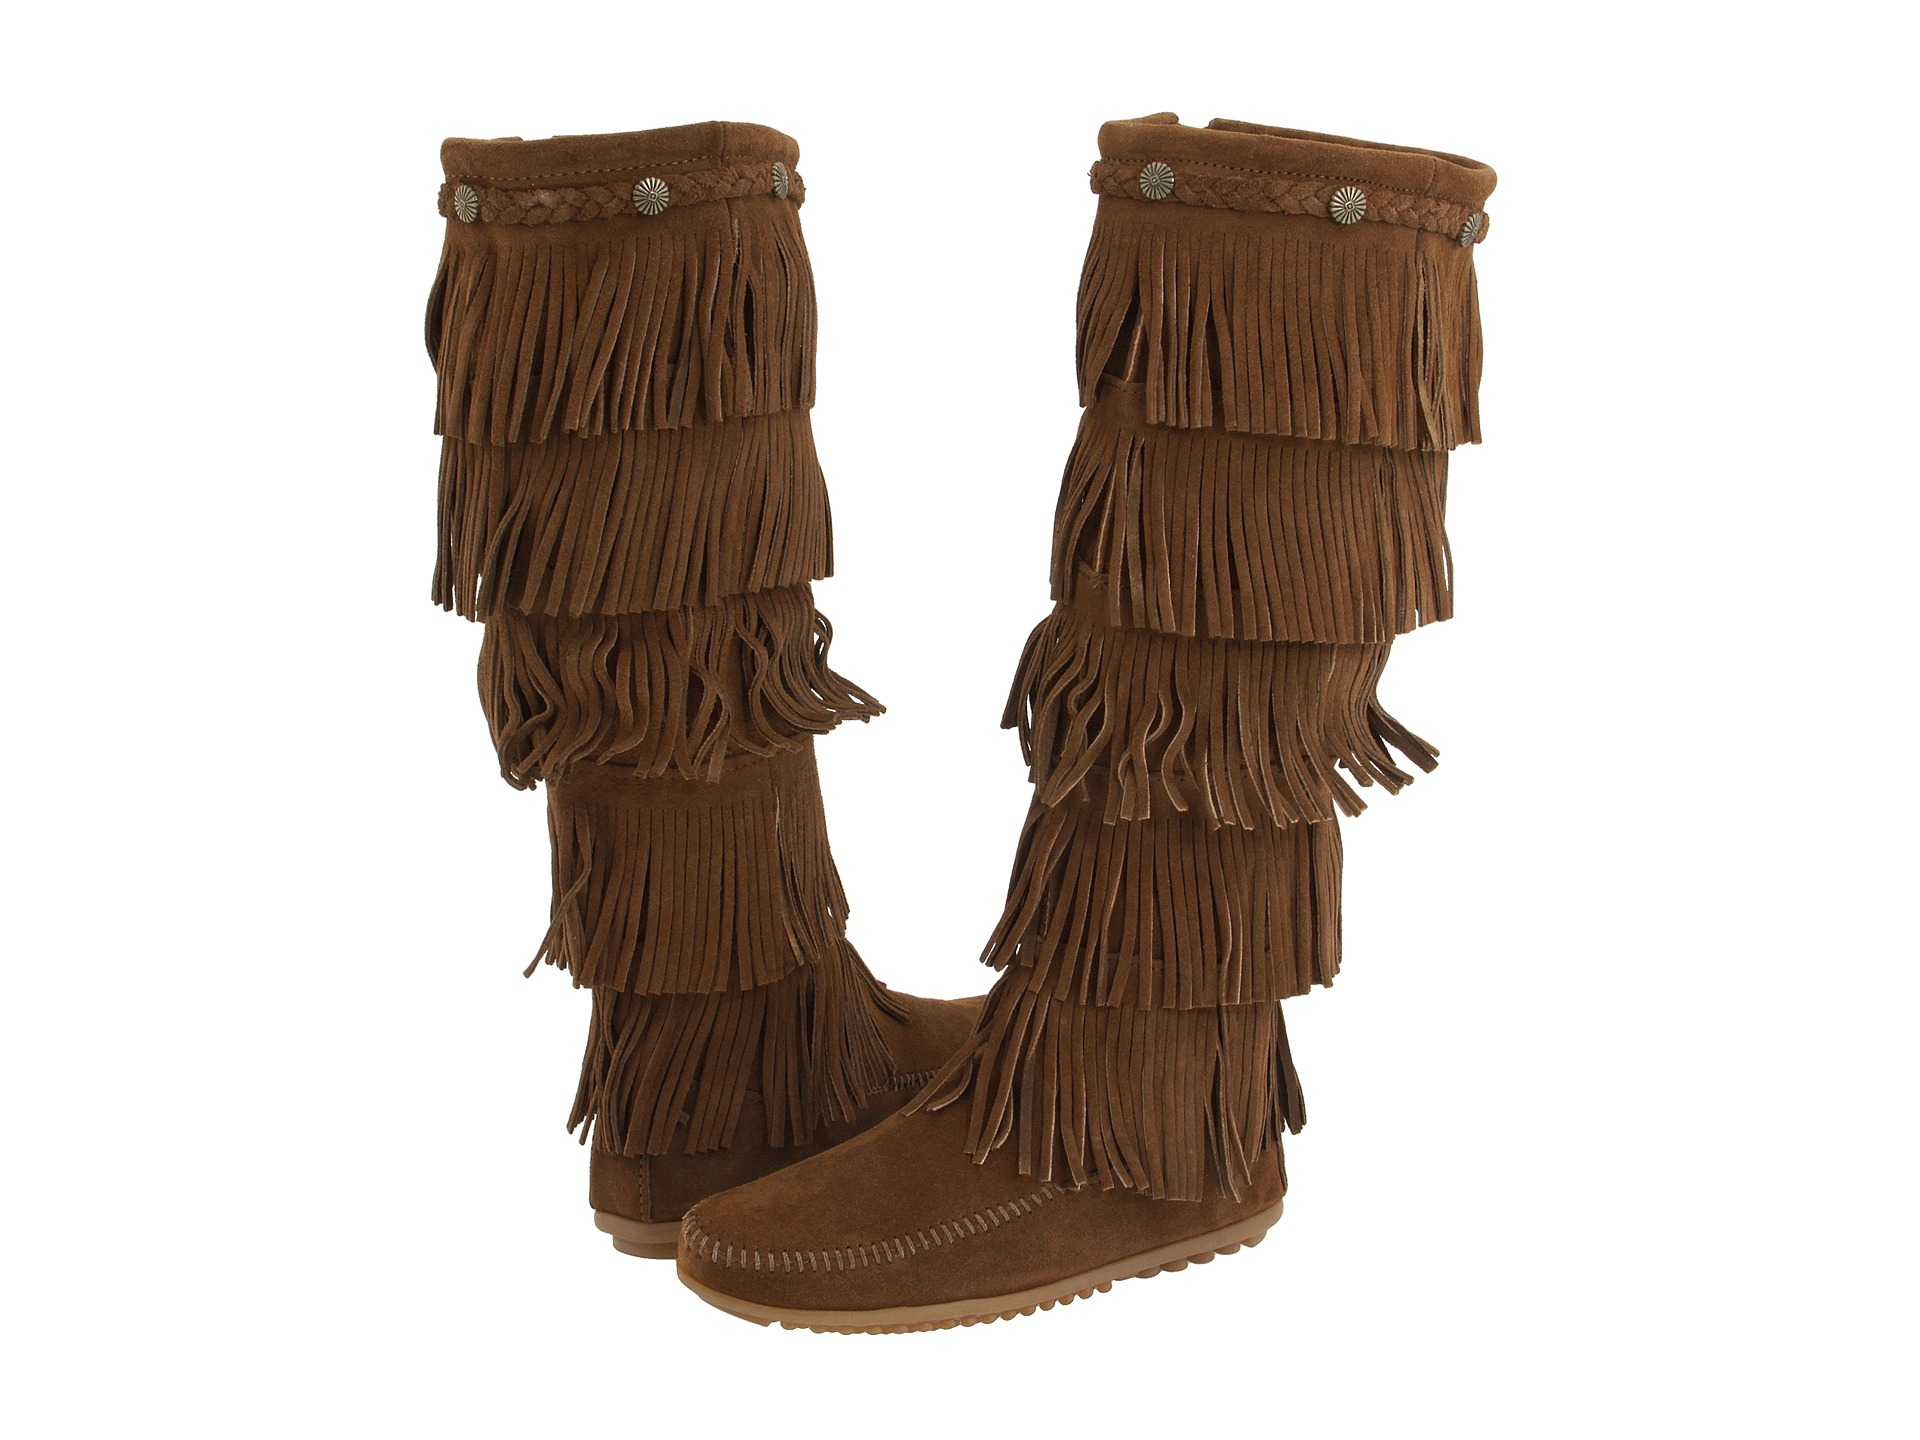 Fun fringes give your wardrobe a sweet southern twang. Pair ankle booties with jeans or calf-high boots with a dress for a casual vibe. Tall styles with lace-up front and multiple layers of .